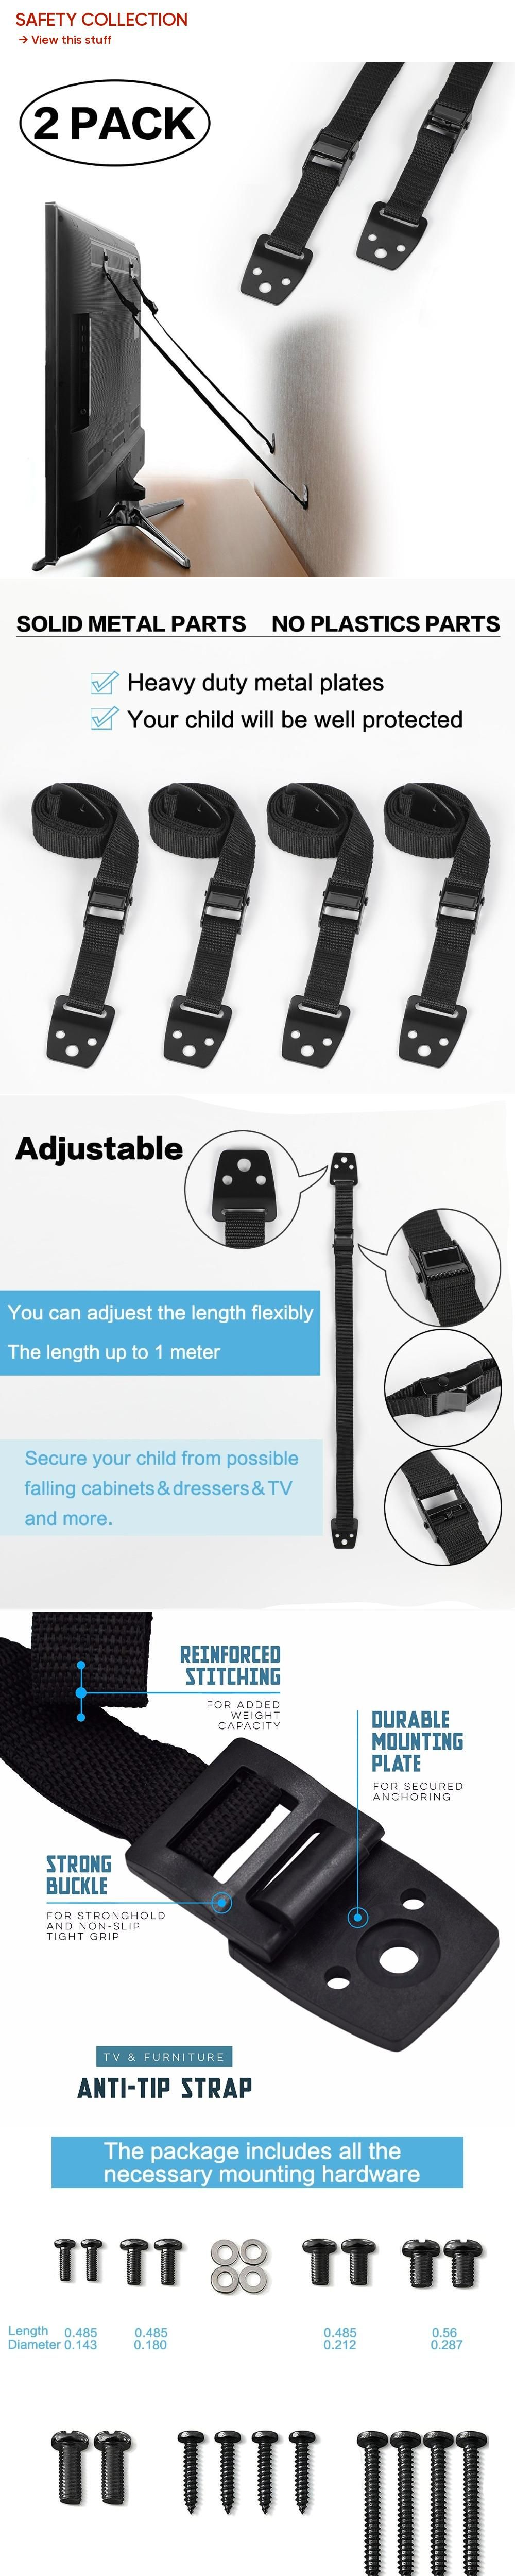 2 pack baby safety antitip straps for flat screen tvs and